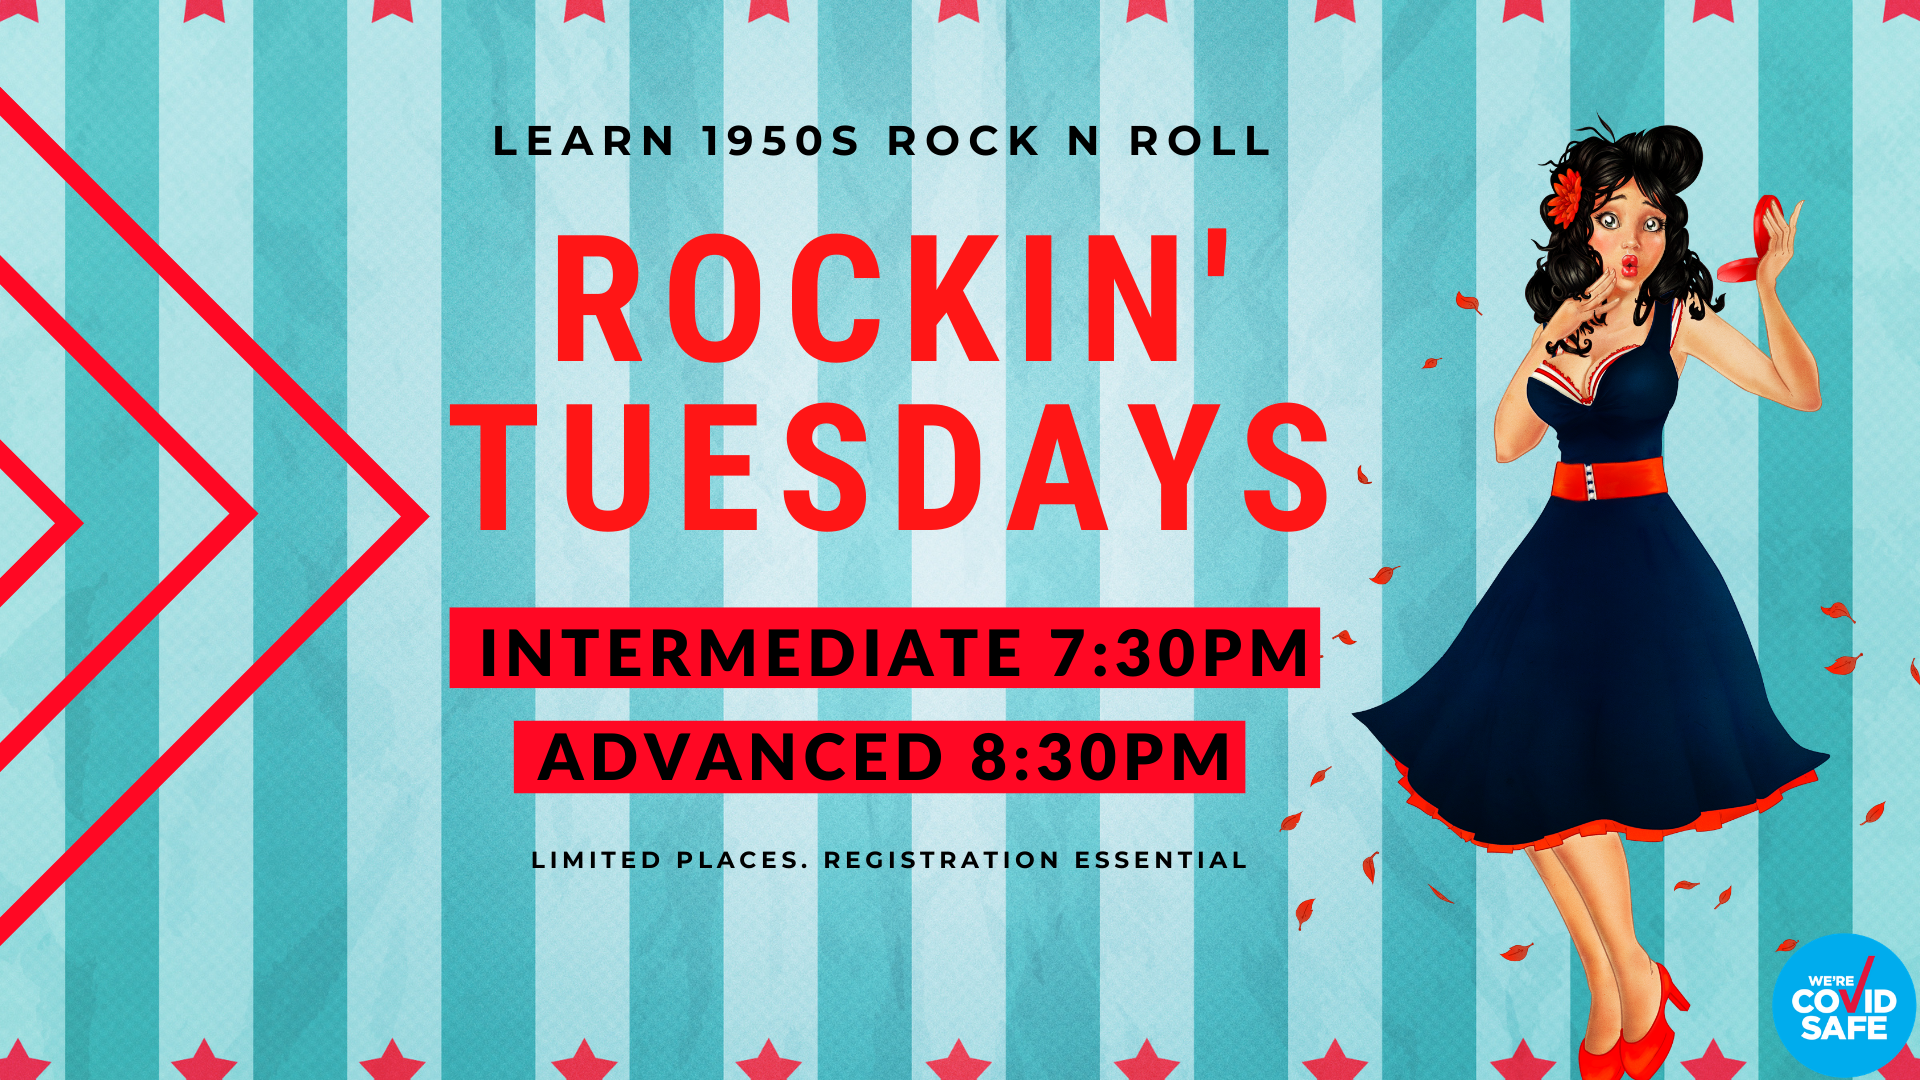 Tuesday Rock n Roll - Advanced Session